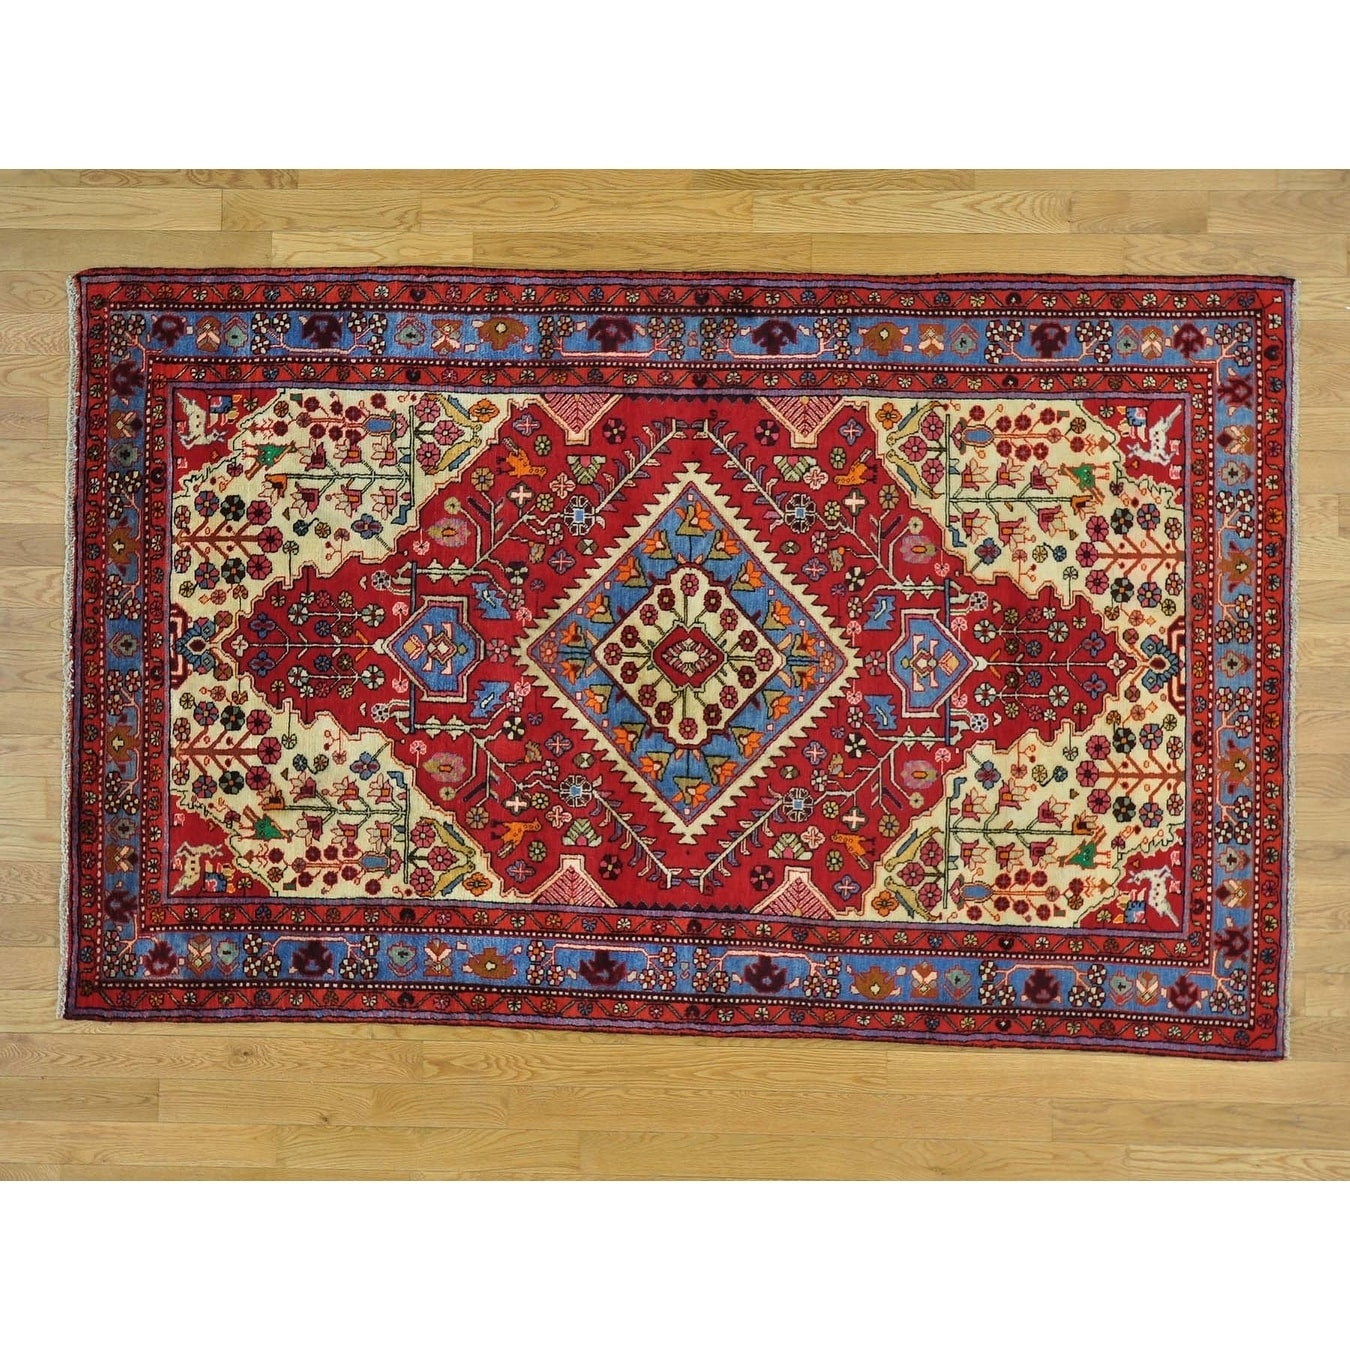 Hand Knotted Red Persian with Wool Oriental Rug - 410 x 79